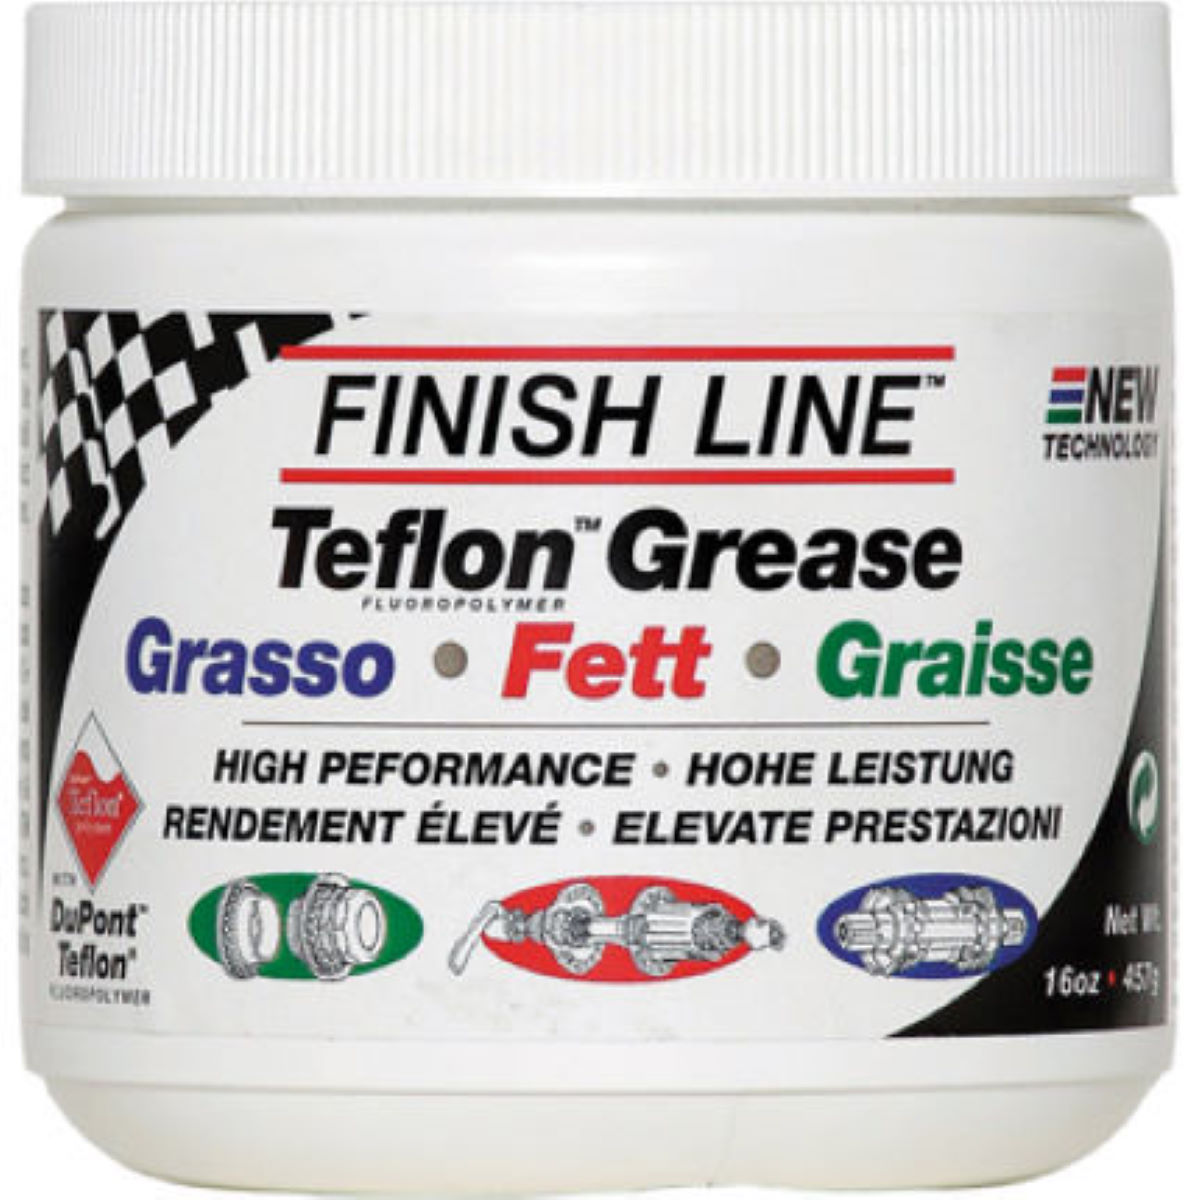 Pot de graisse Finish Line Teflon 455 g - 455g Graisse